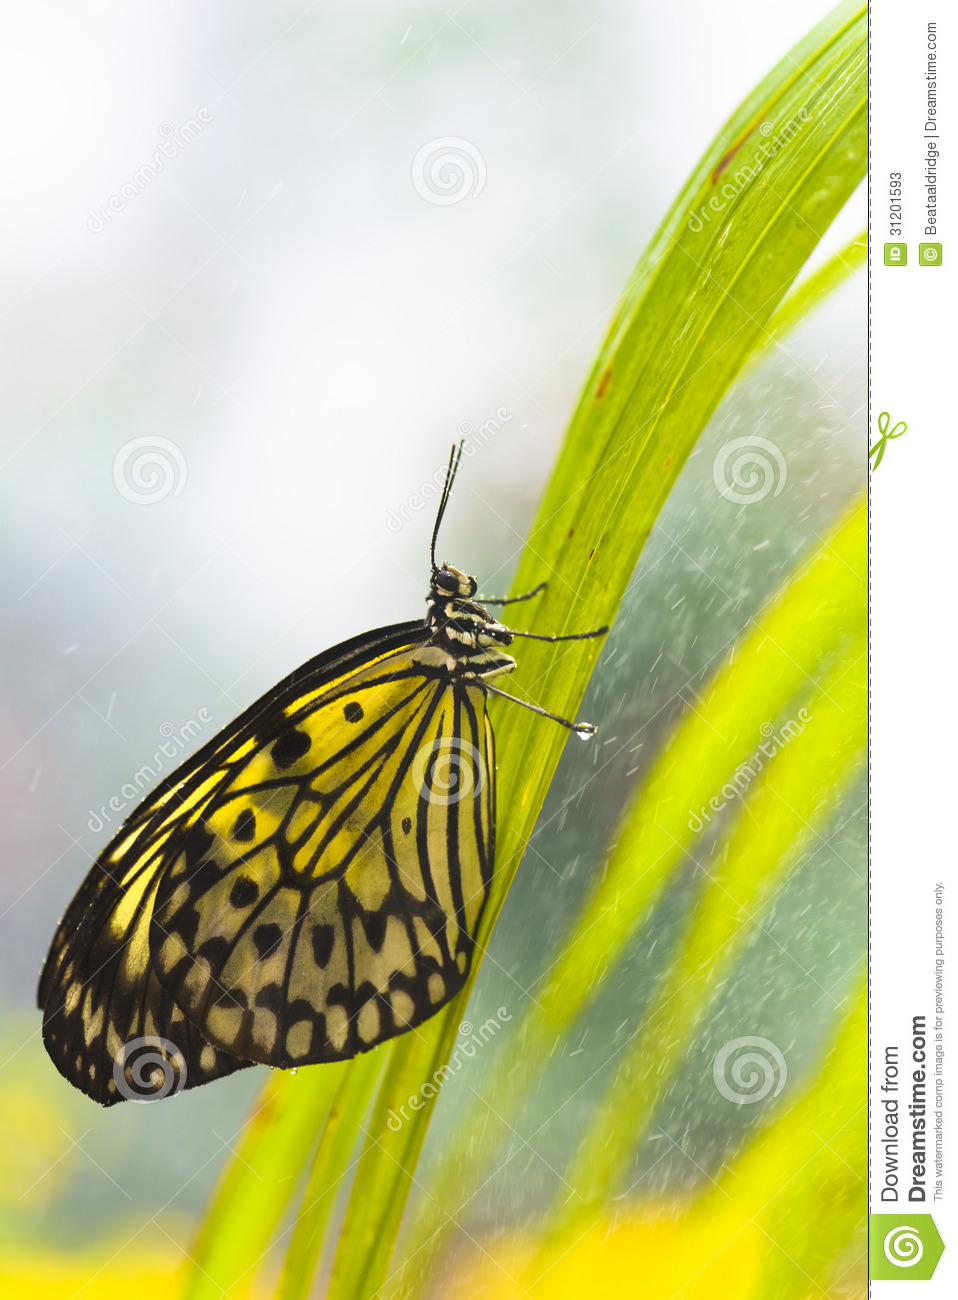 butterfly in thesis time Excerpt from the emergency butterfly dam on the chicago drainage canal at lockport, illinois: thesis the sanitary and ship canal was started september 3, 1892 and on january 2, 1900 water was turned in for first time.